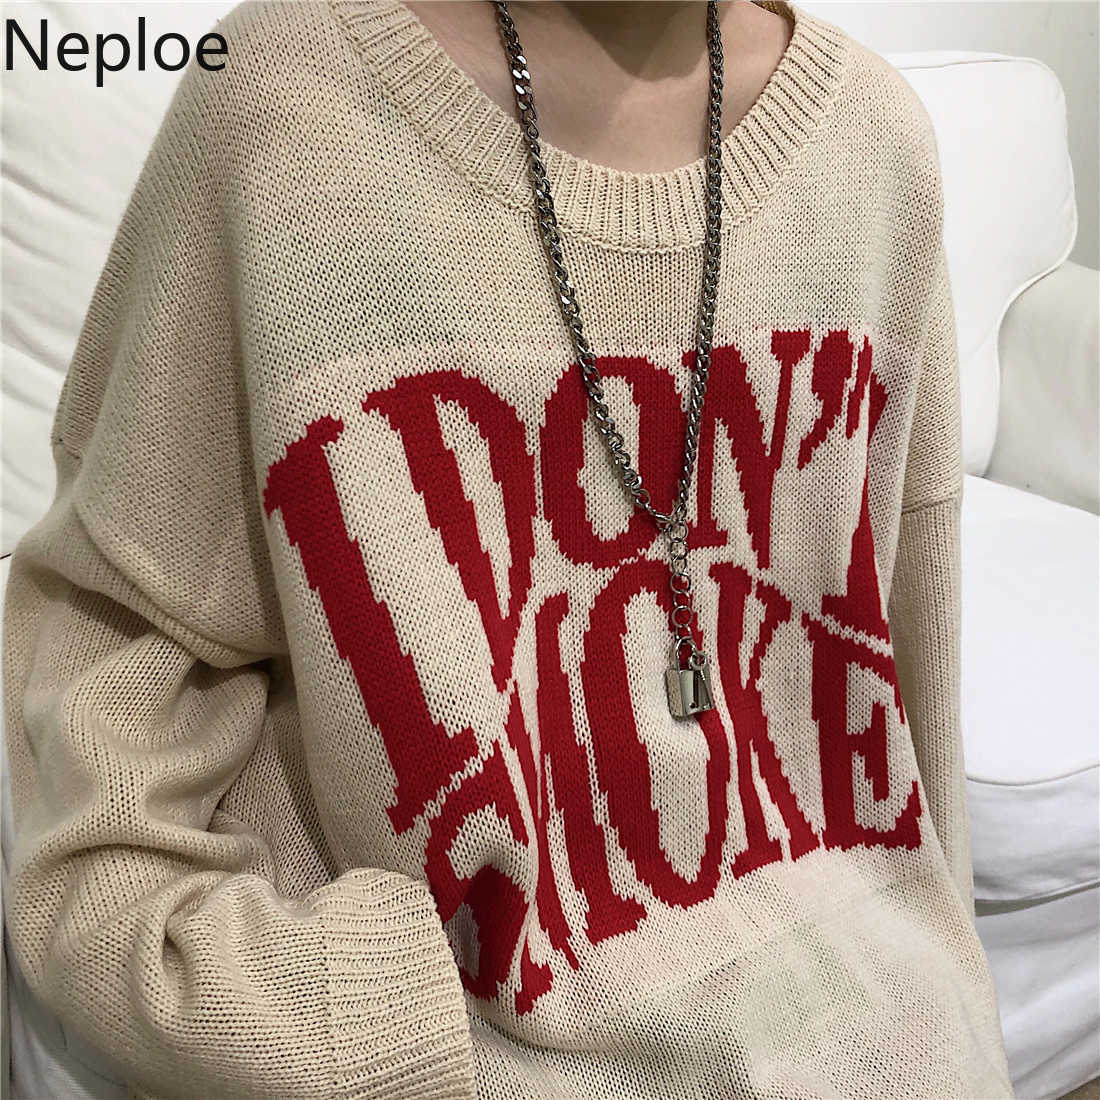 Neploe Harajuku Streetwear lettres Jacquard Pull 2020 automne hiver épaissir Pull Femme à manches longues femmes hommes pulls 56502